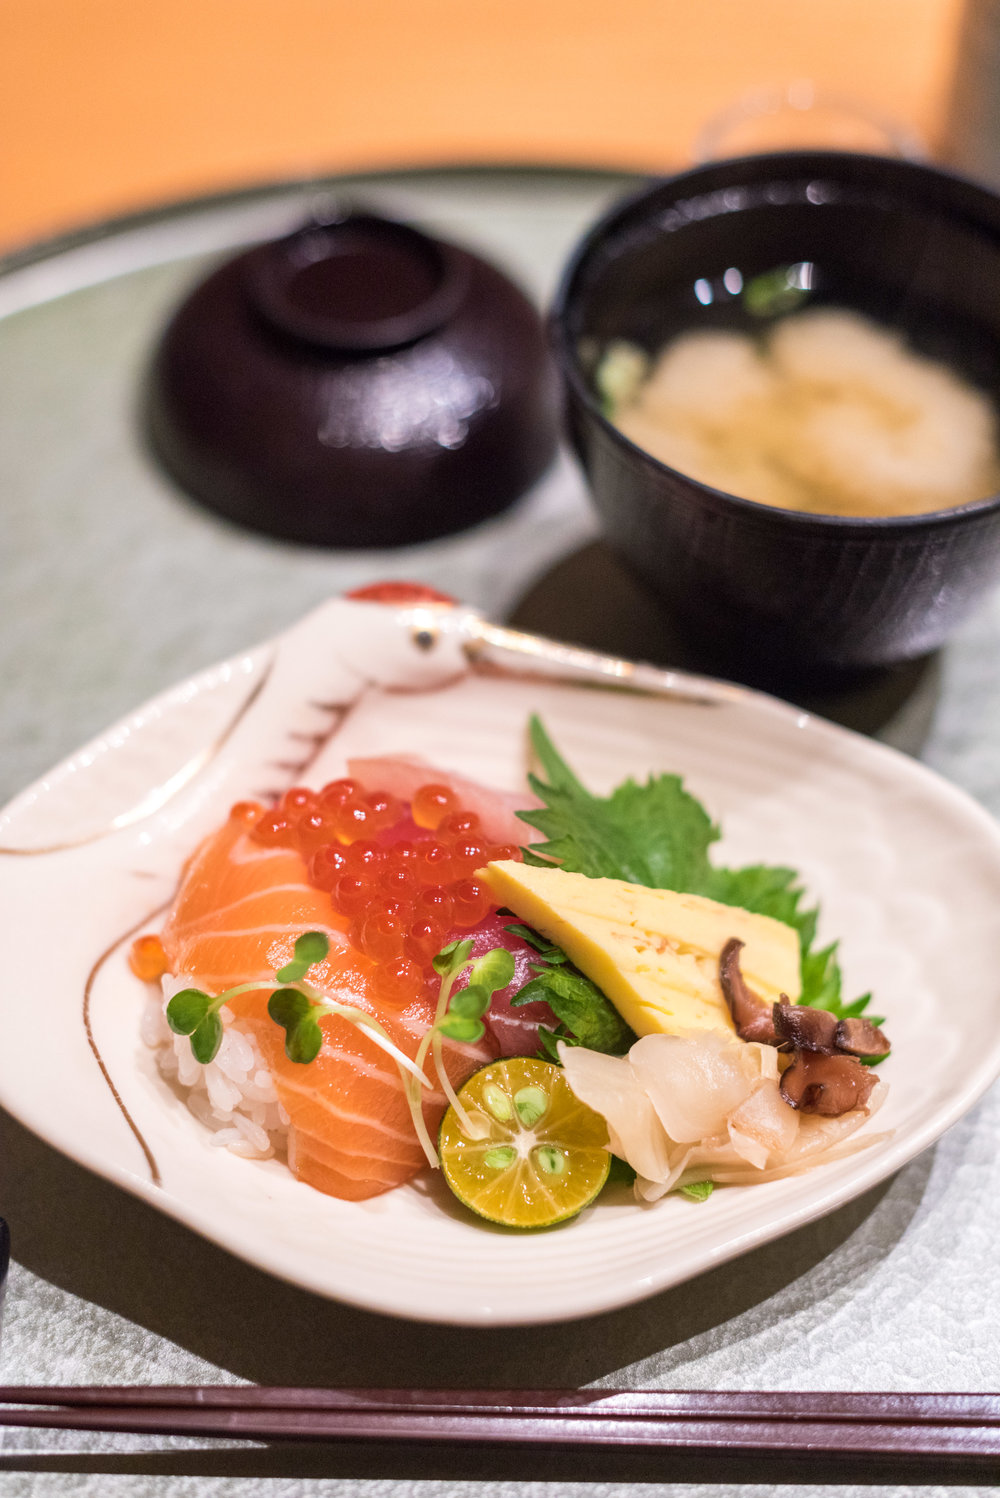 Sashimi over Sushi Rice and Miso Soup ibuki by Takagi Kazuo - Shangri-La's Far Eastern Plaza Hotel, Taipei